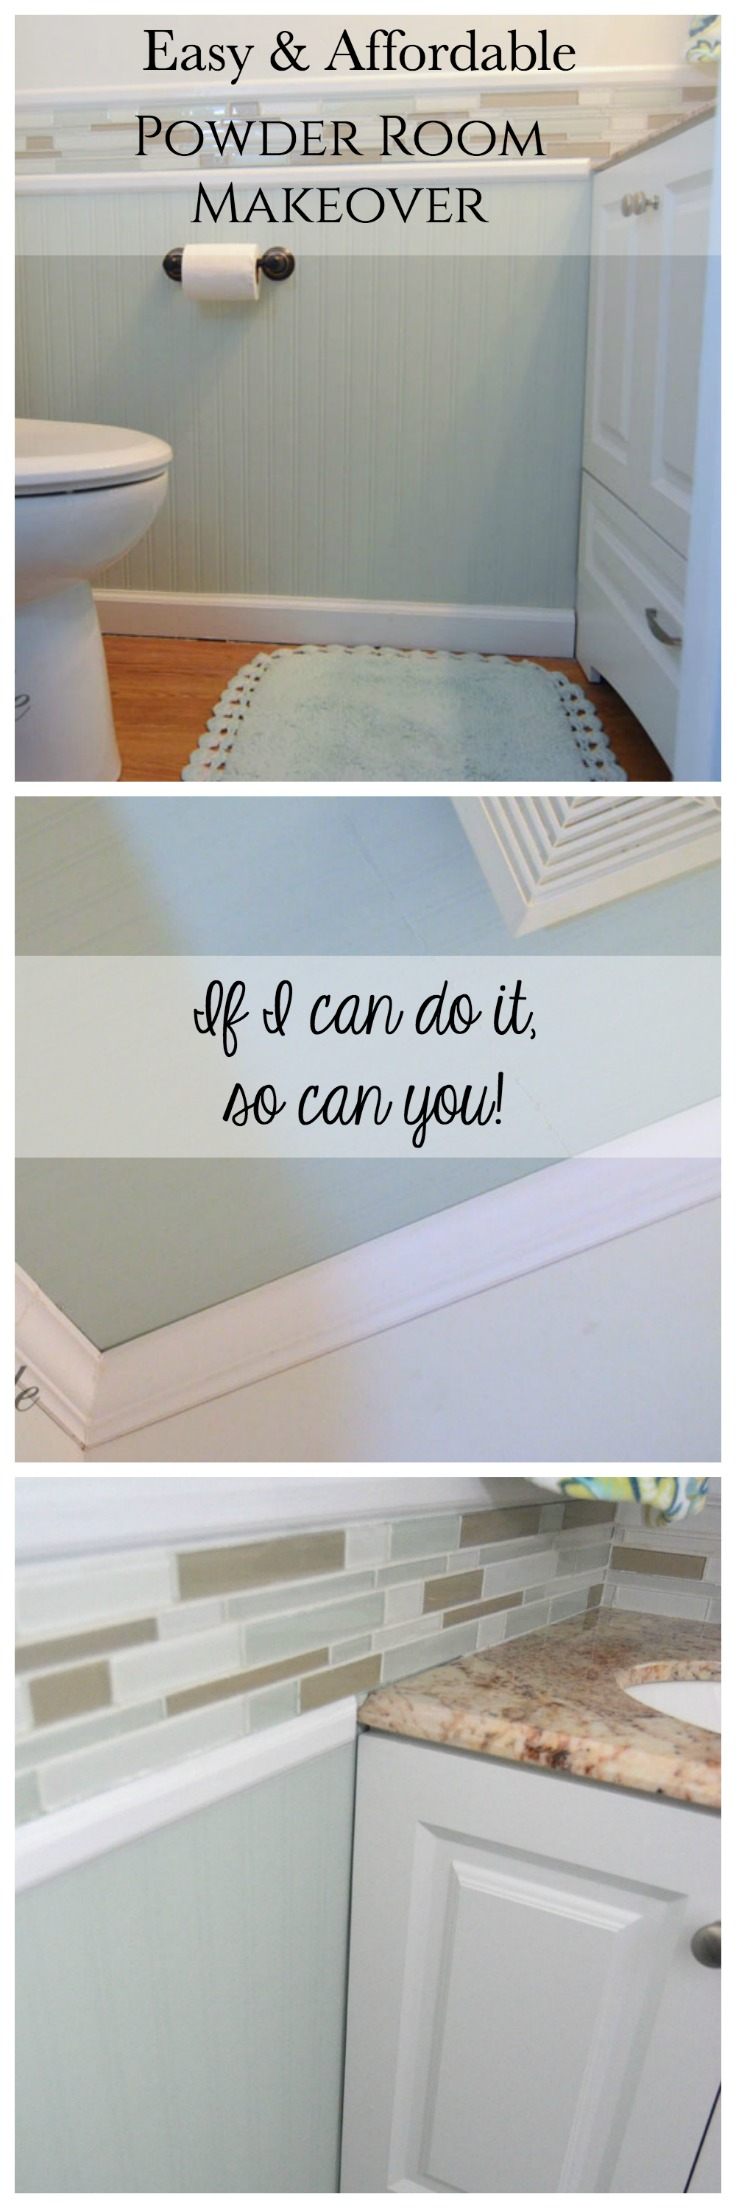 My Easy and Affordable Powder Room makeover. If I can do it, so can you!